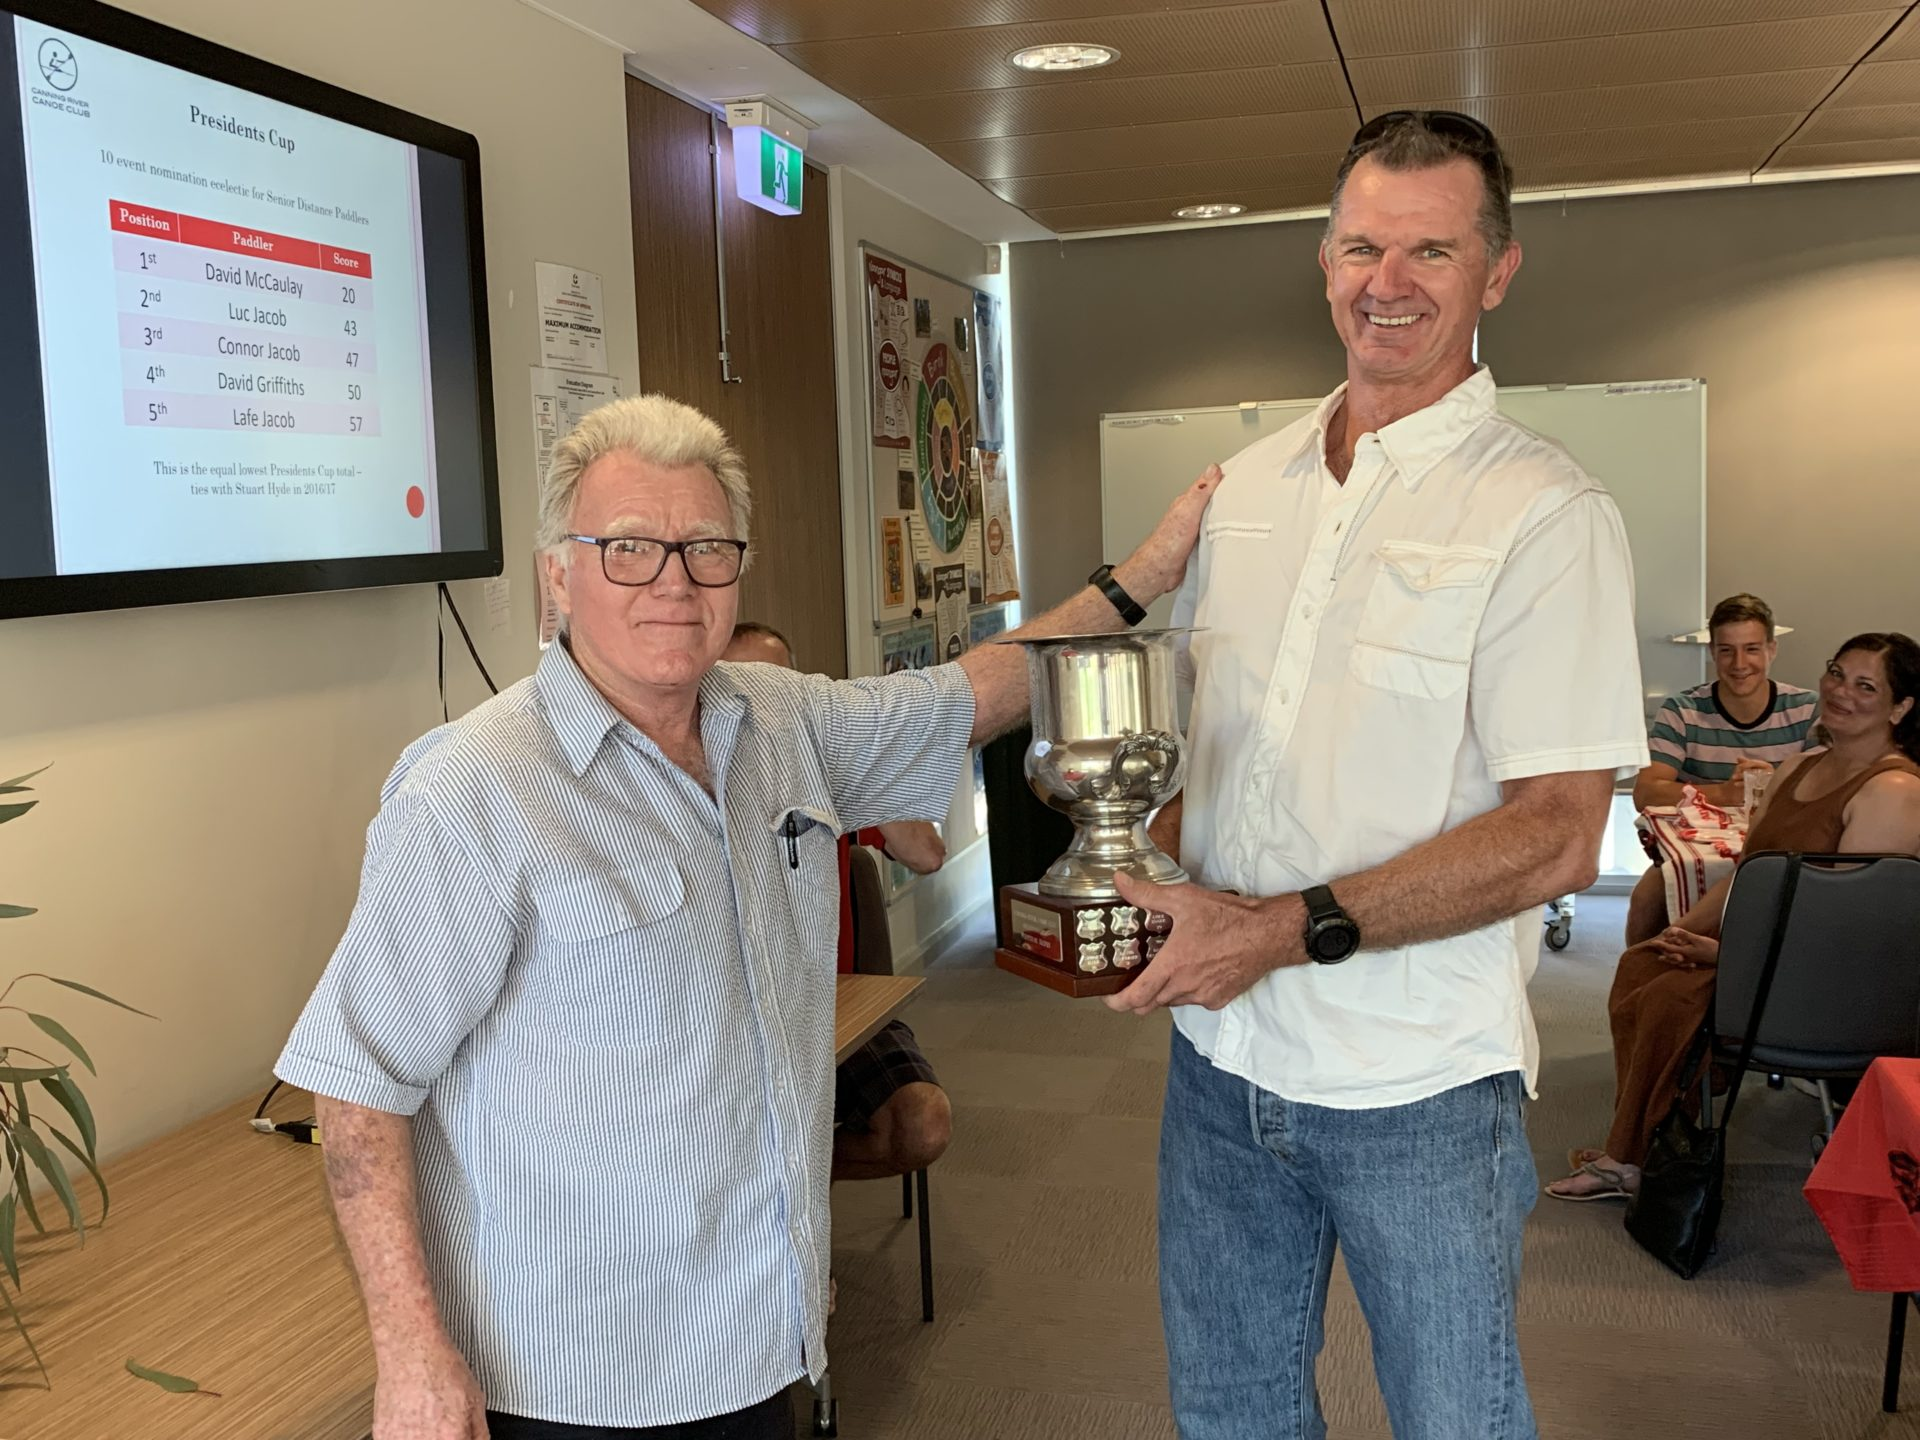 2018/19 Presidents Cup winner Dave MCCauleyDave MACauley